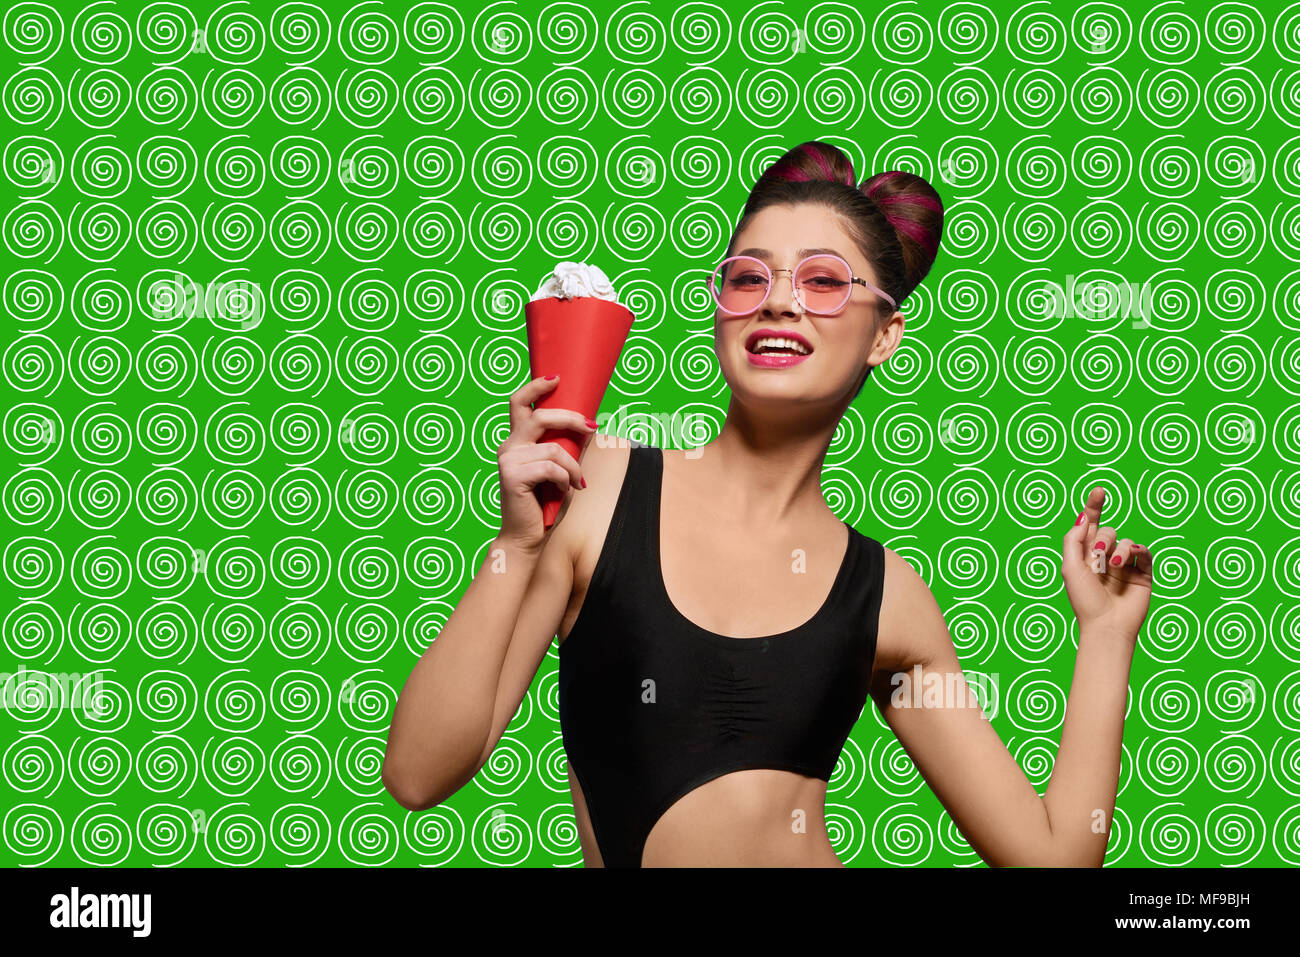 Fashion pop art model posing wearing pink sunglasses. Girl having black stylish swimwear, bright make up and fance hairstyle. Keeping ice cream in red horn. Saturated green background. - Stock Image